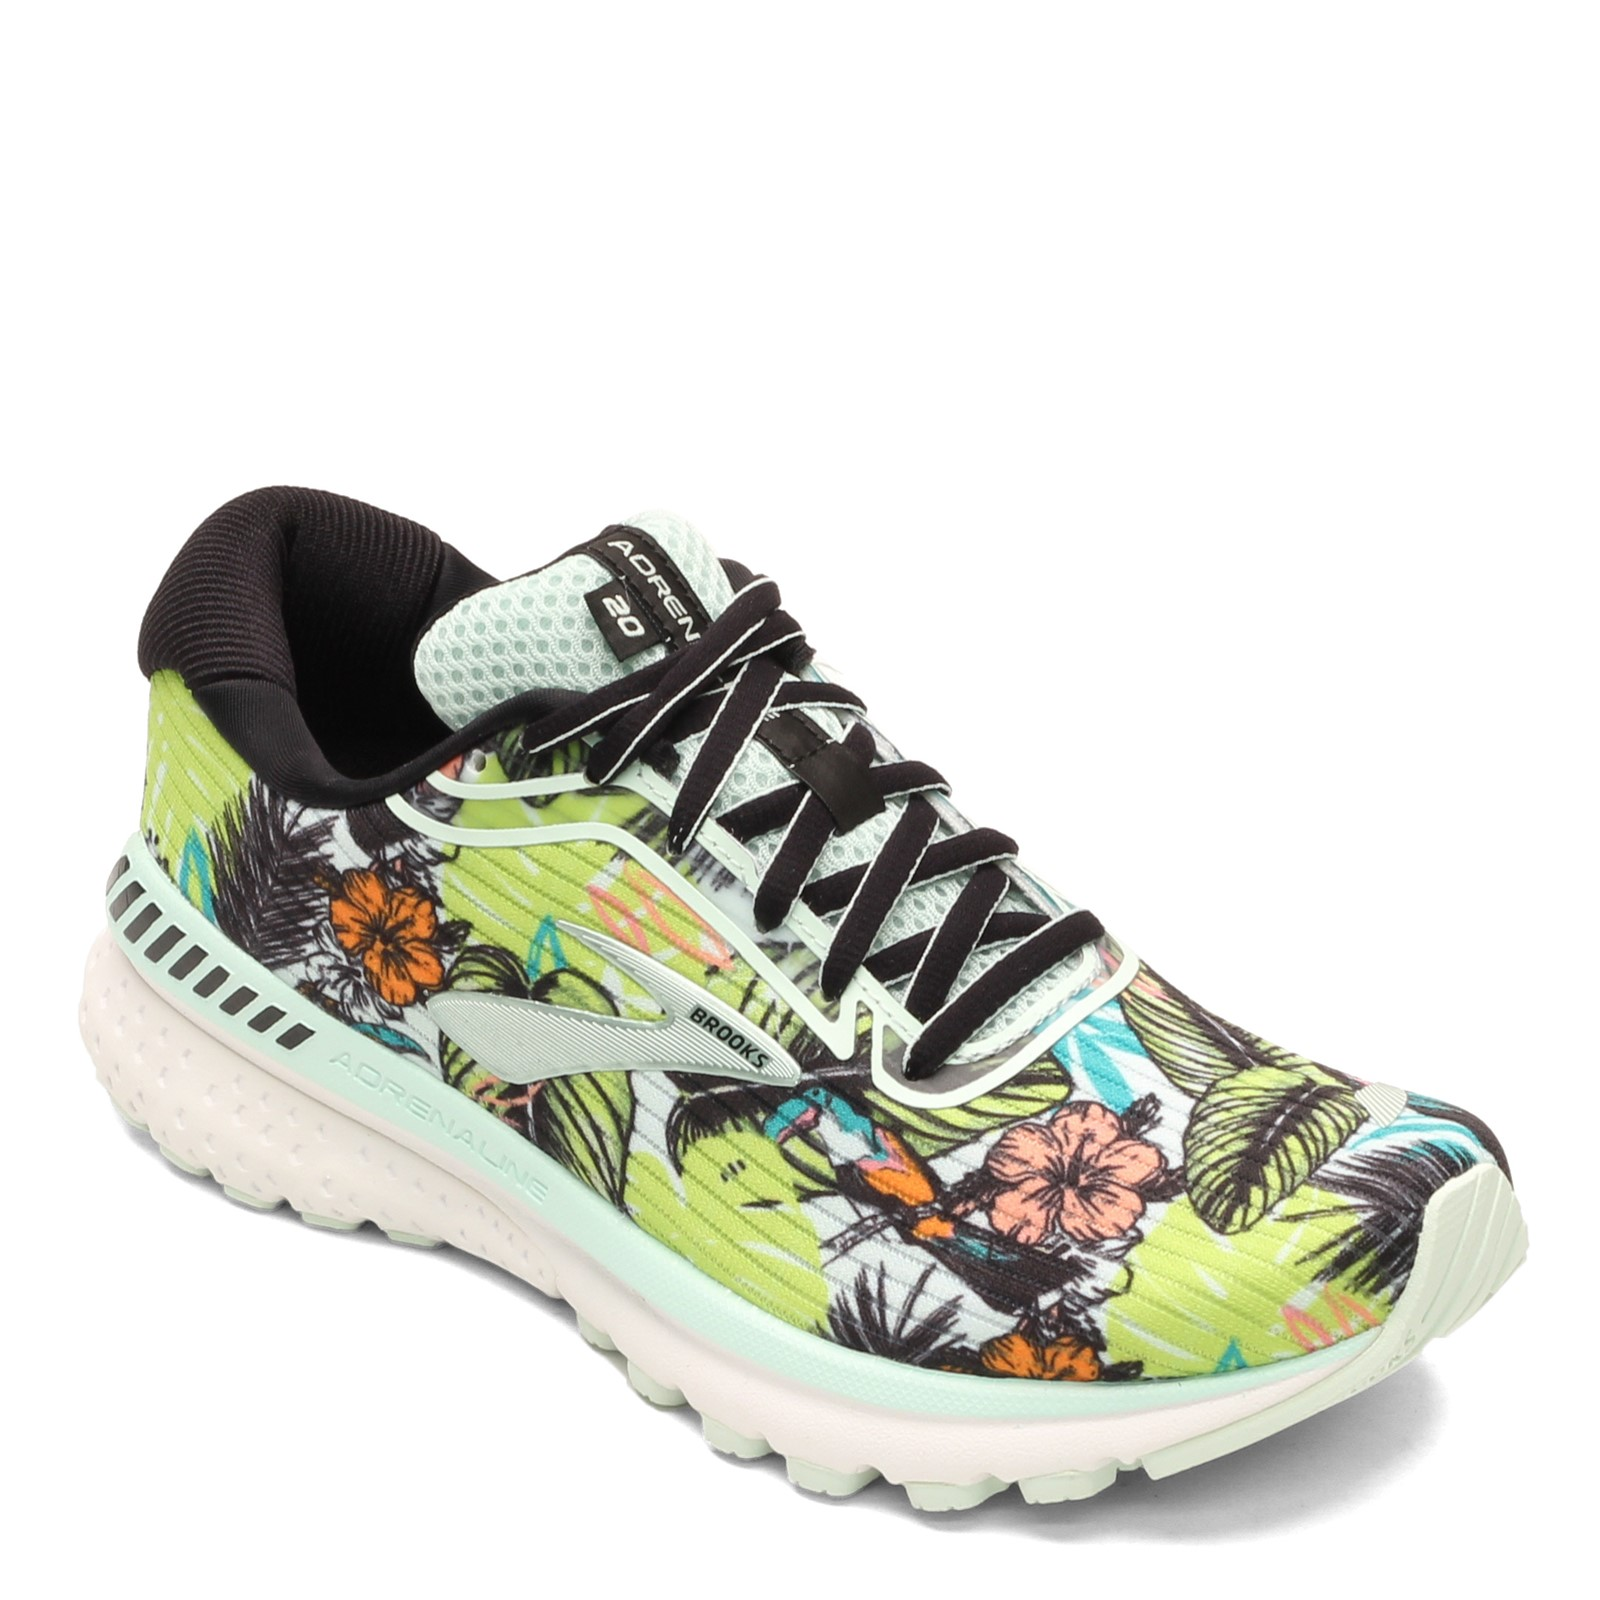 womens brooks running shoes clearance